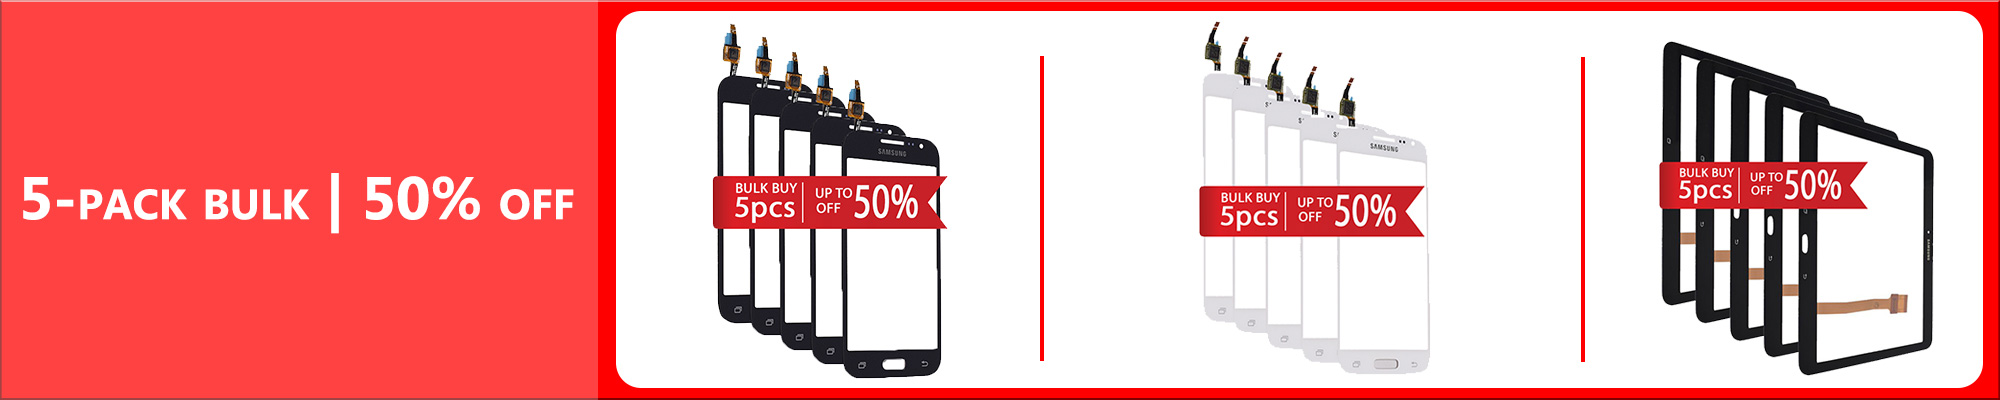 Samsung Touchscreens Discounted Bulk Prices. Buy 5 pcs and get up to 50% discount! - GSM Parts Center